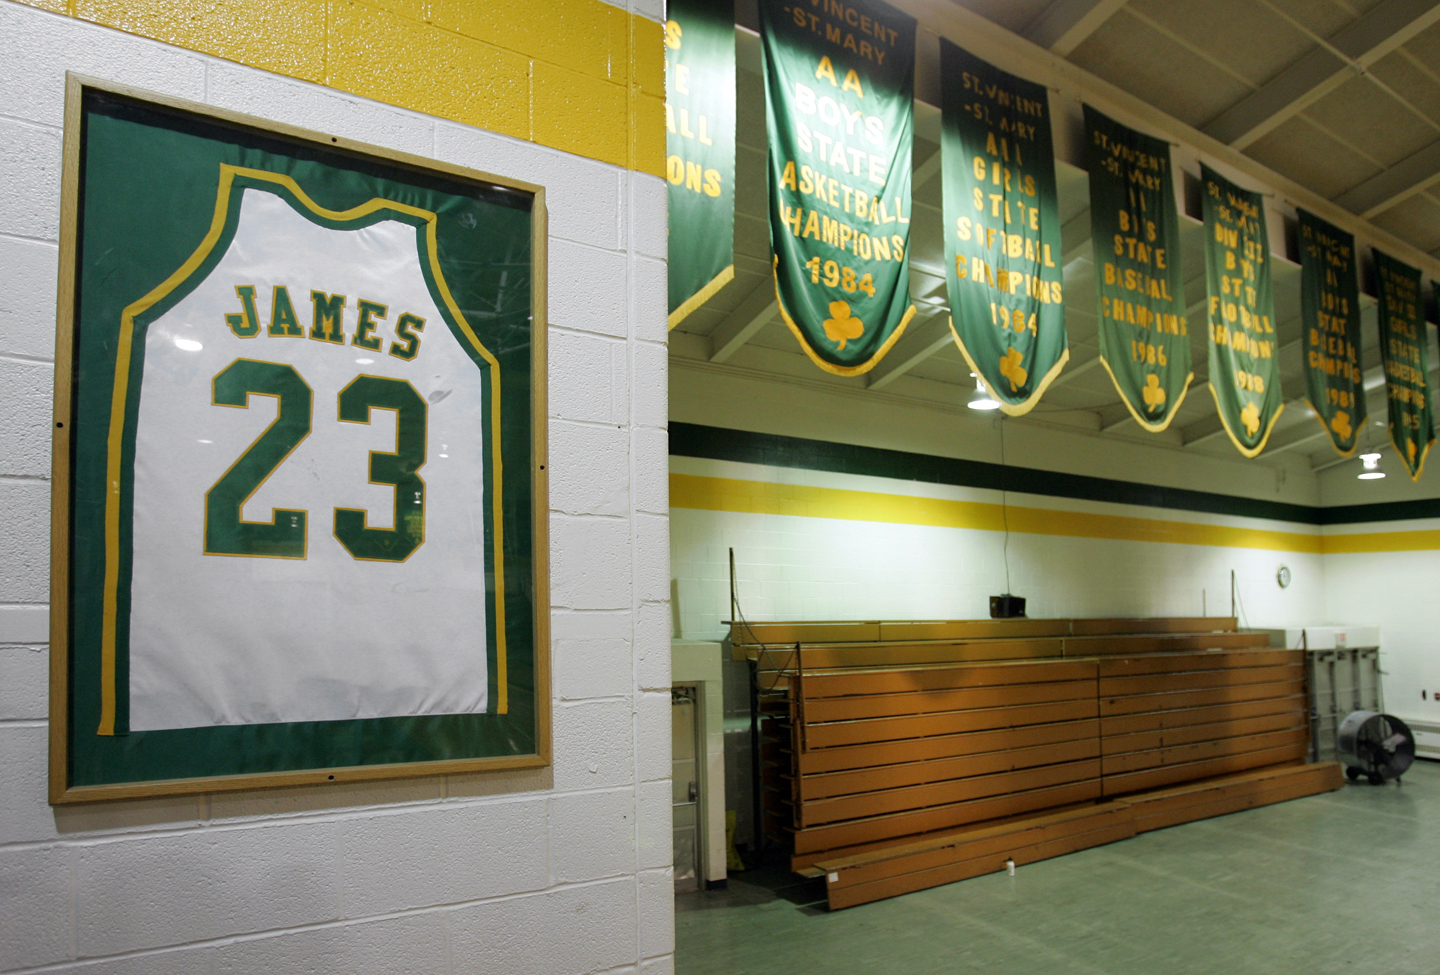 The retired jersey of LeBron James hangs in the gym at St. Vincent-St. Mary High School in Akron, Ohio next to the school's championship banners Friday, June 8, 2007.